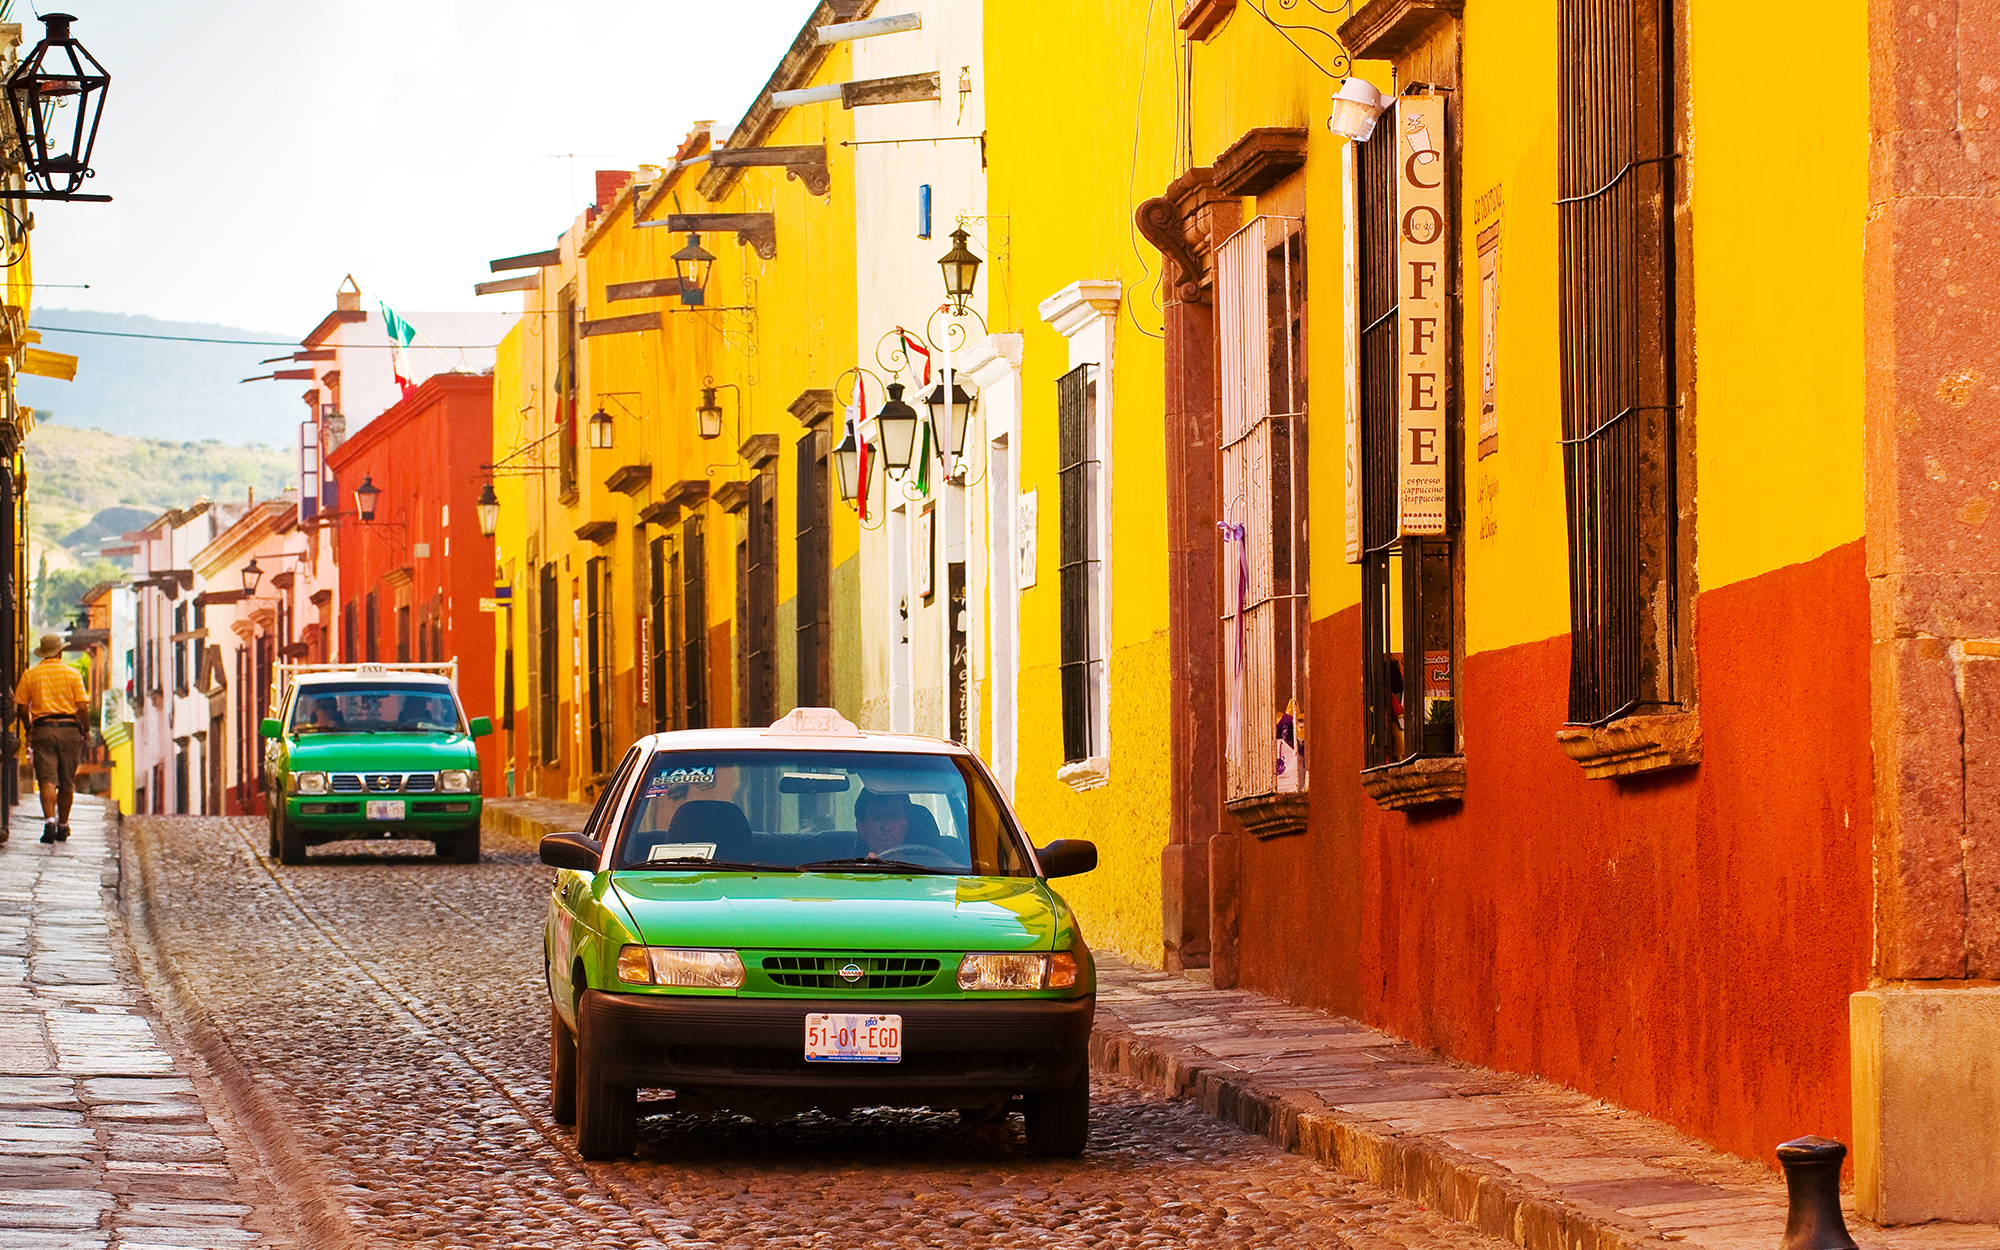 San Miguel De Allende Colonial Cities Hotels Find Hotels In San Miguel De Allende Colonial